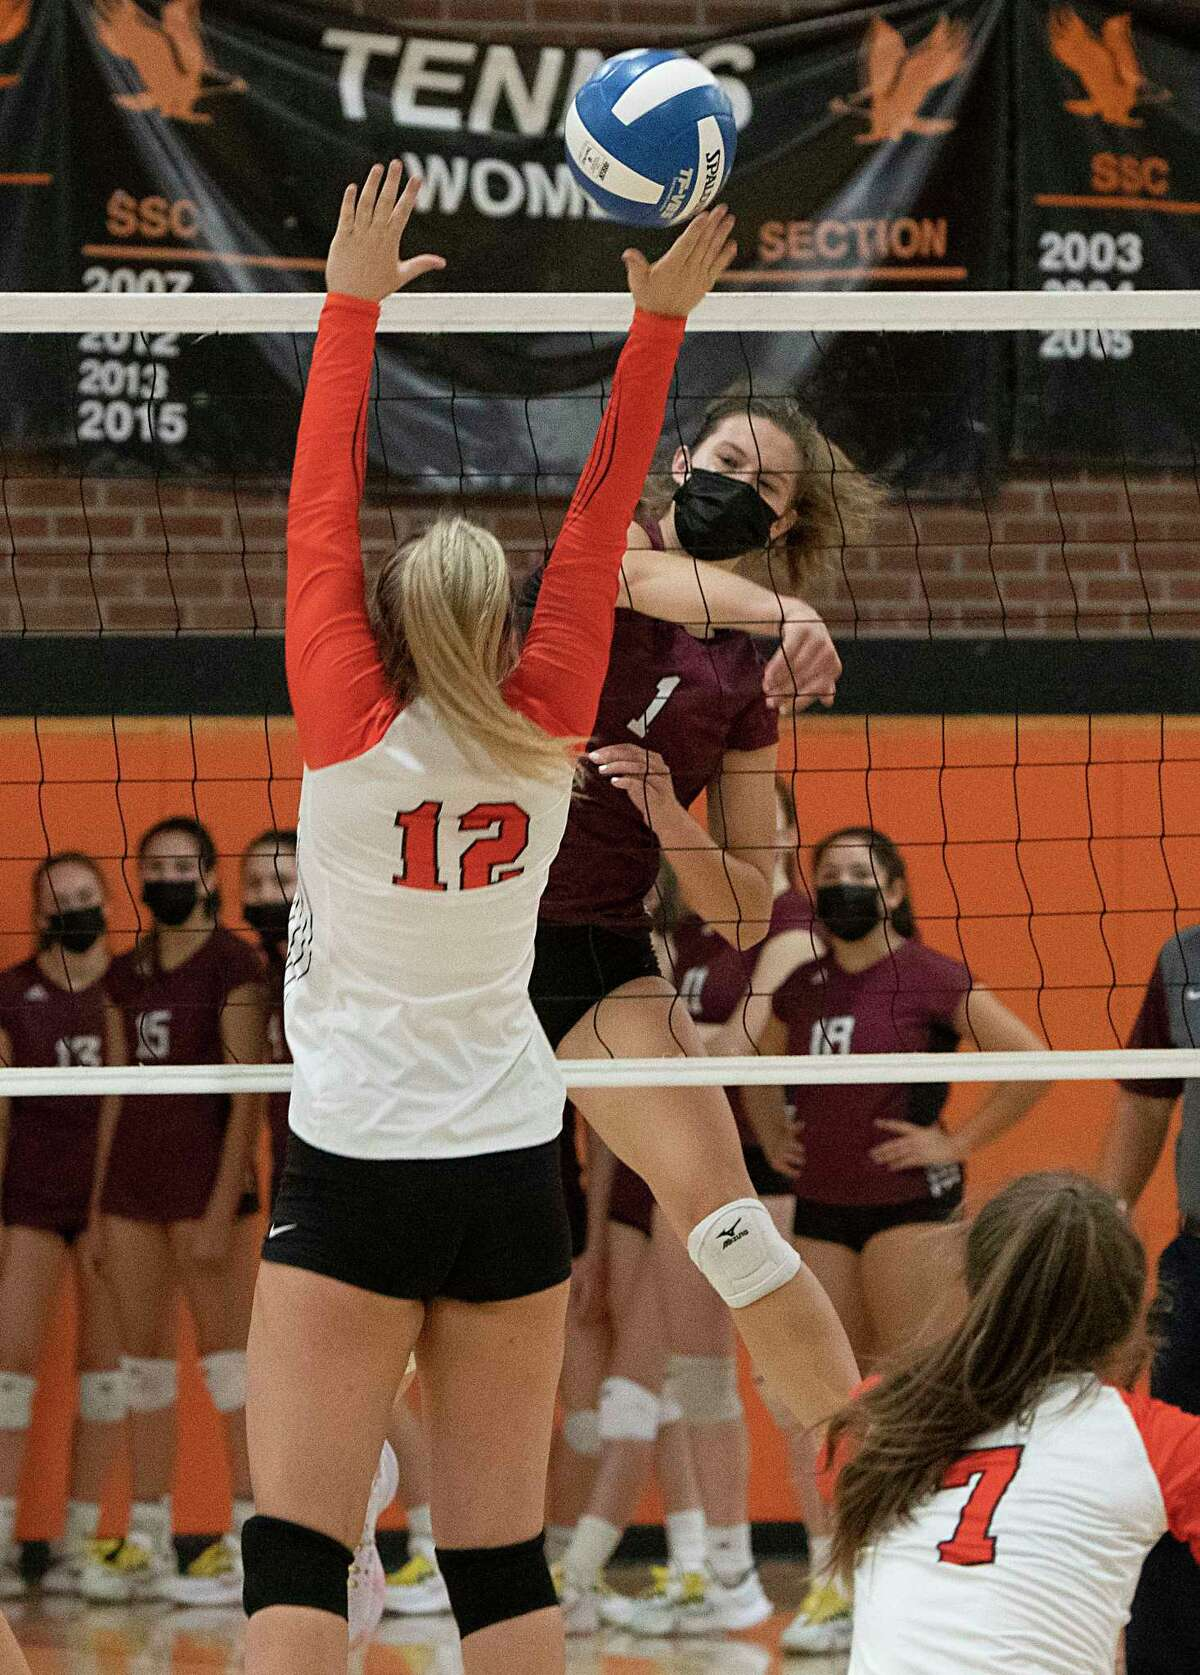 Burnt Hills' Carlie Rzeszotarski, right, spikes the ball past Bethlehem's Madeline Rounds in a match last week.